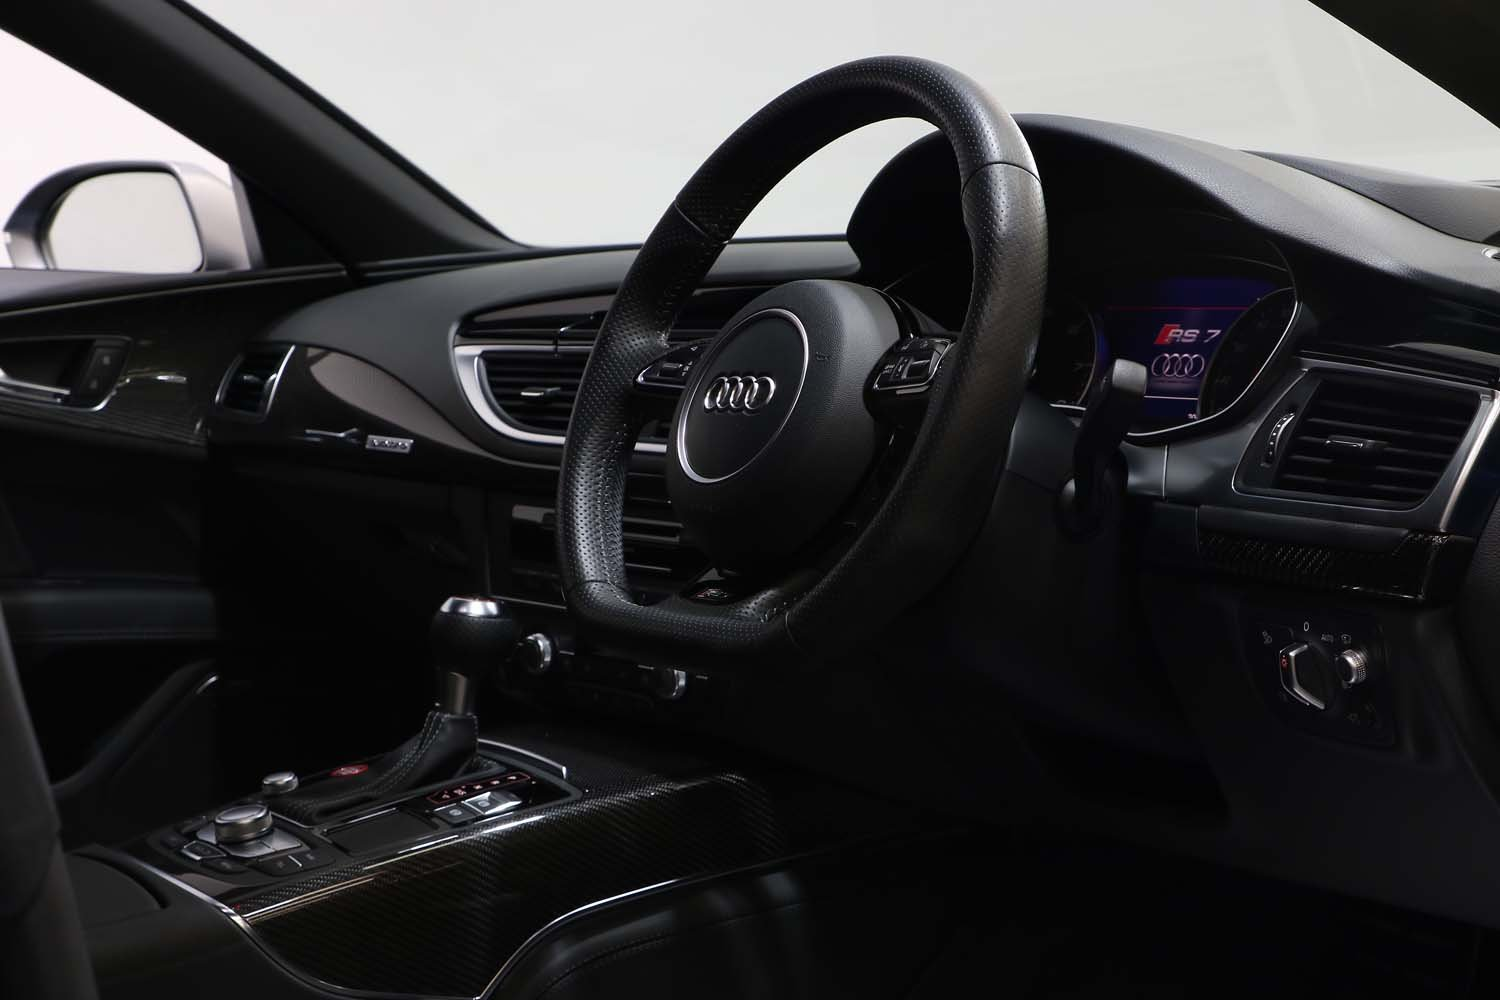 2016 66 AUDI RS7 PERFORMANCE SPORTBACK 4.0 TFSI QUATTRO S TRONIC For Sale (picture 4 of 6)